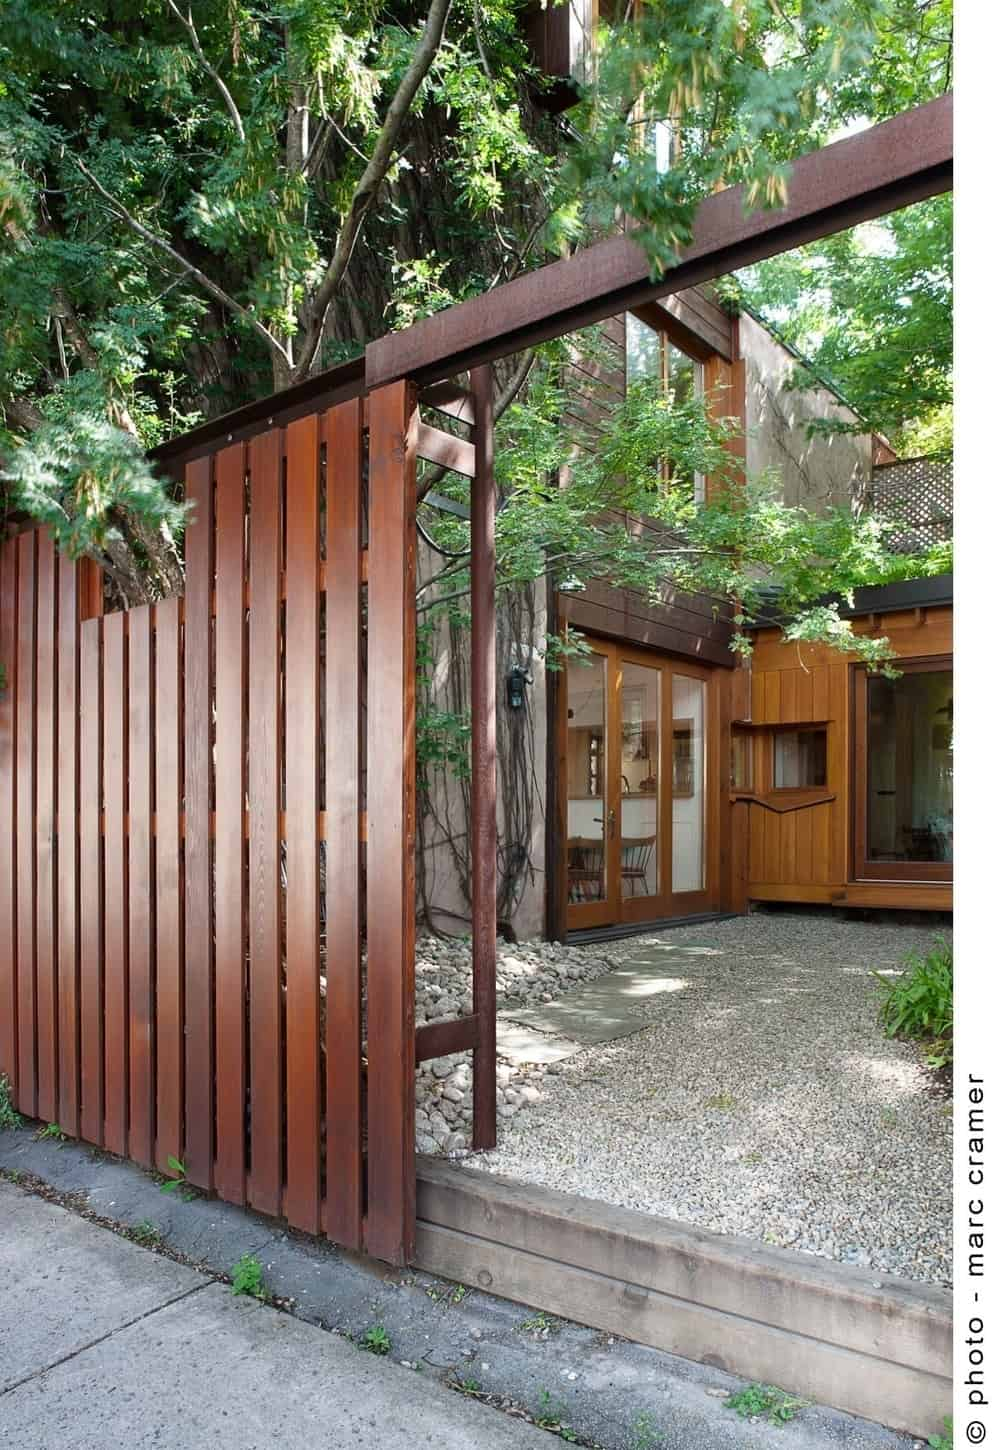 The house features a wooden gate securing the property. Photo credit: Marc Cramer